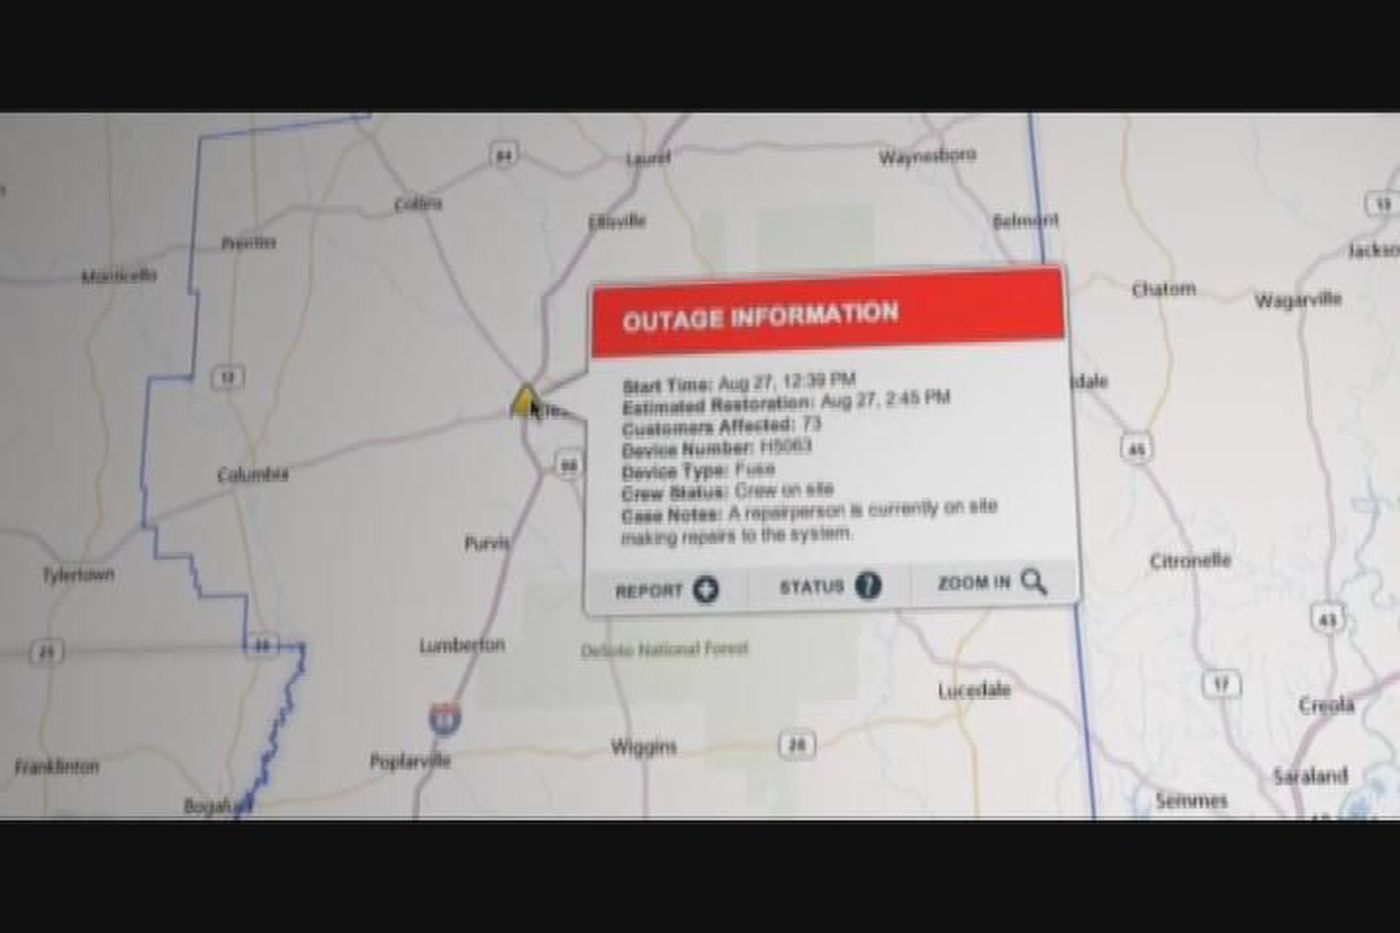 Online Outage Map To Help Miss Power Customers